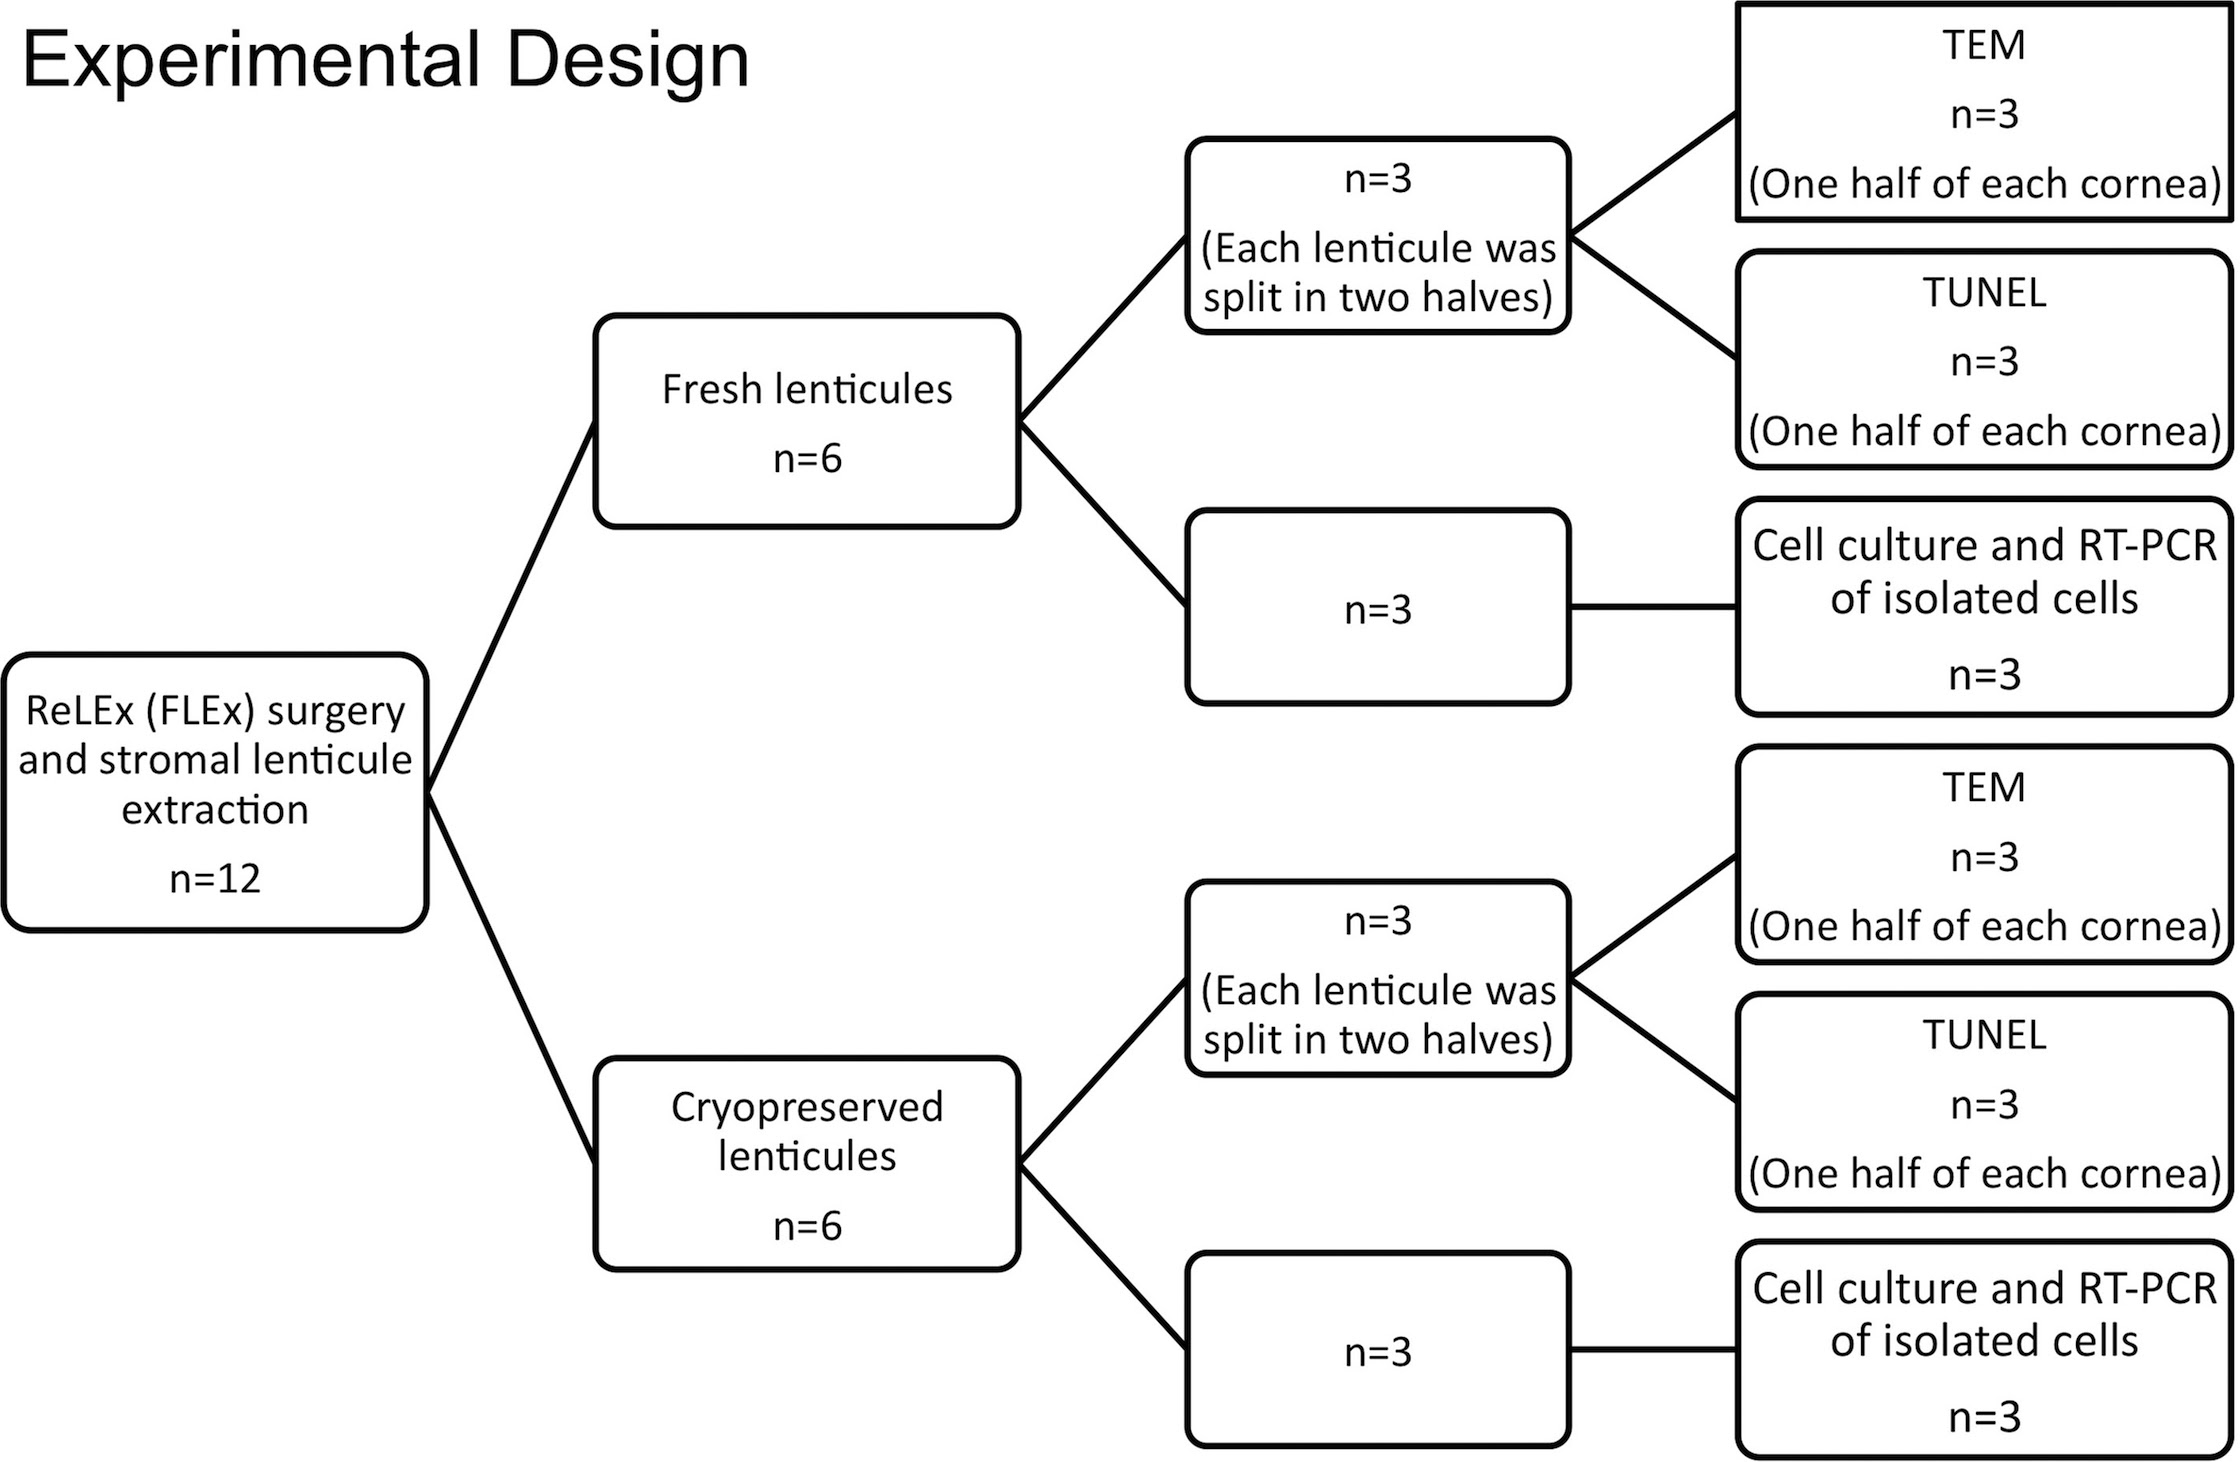 86 INFO EXPERIMENTAL RESEARCH DESIGN STAGES FLOW CHART PDF